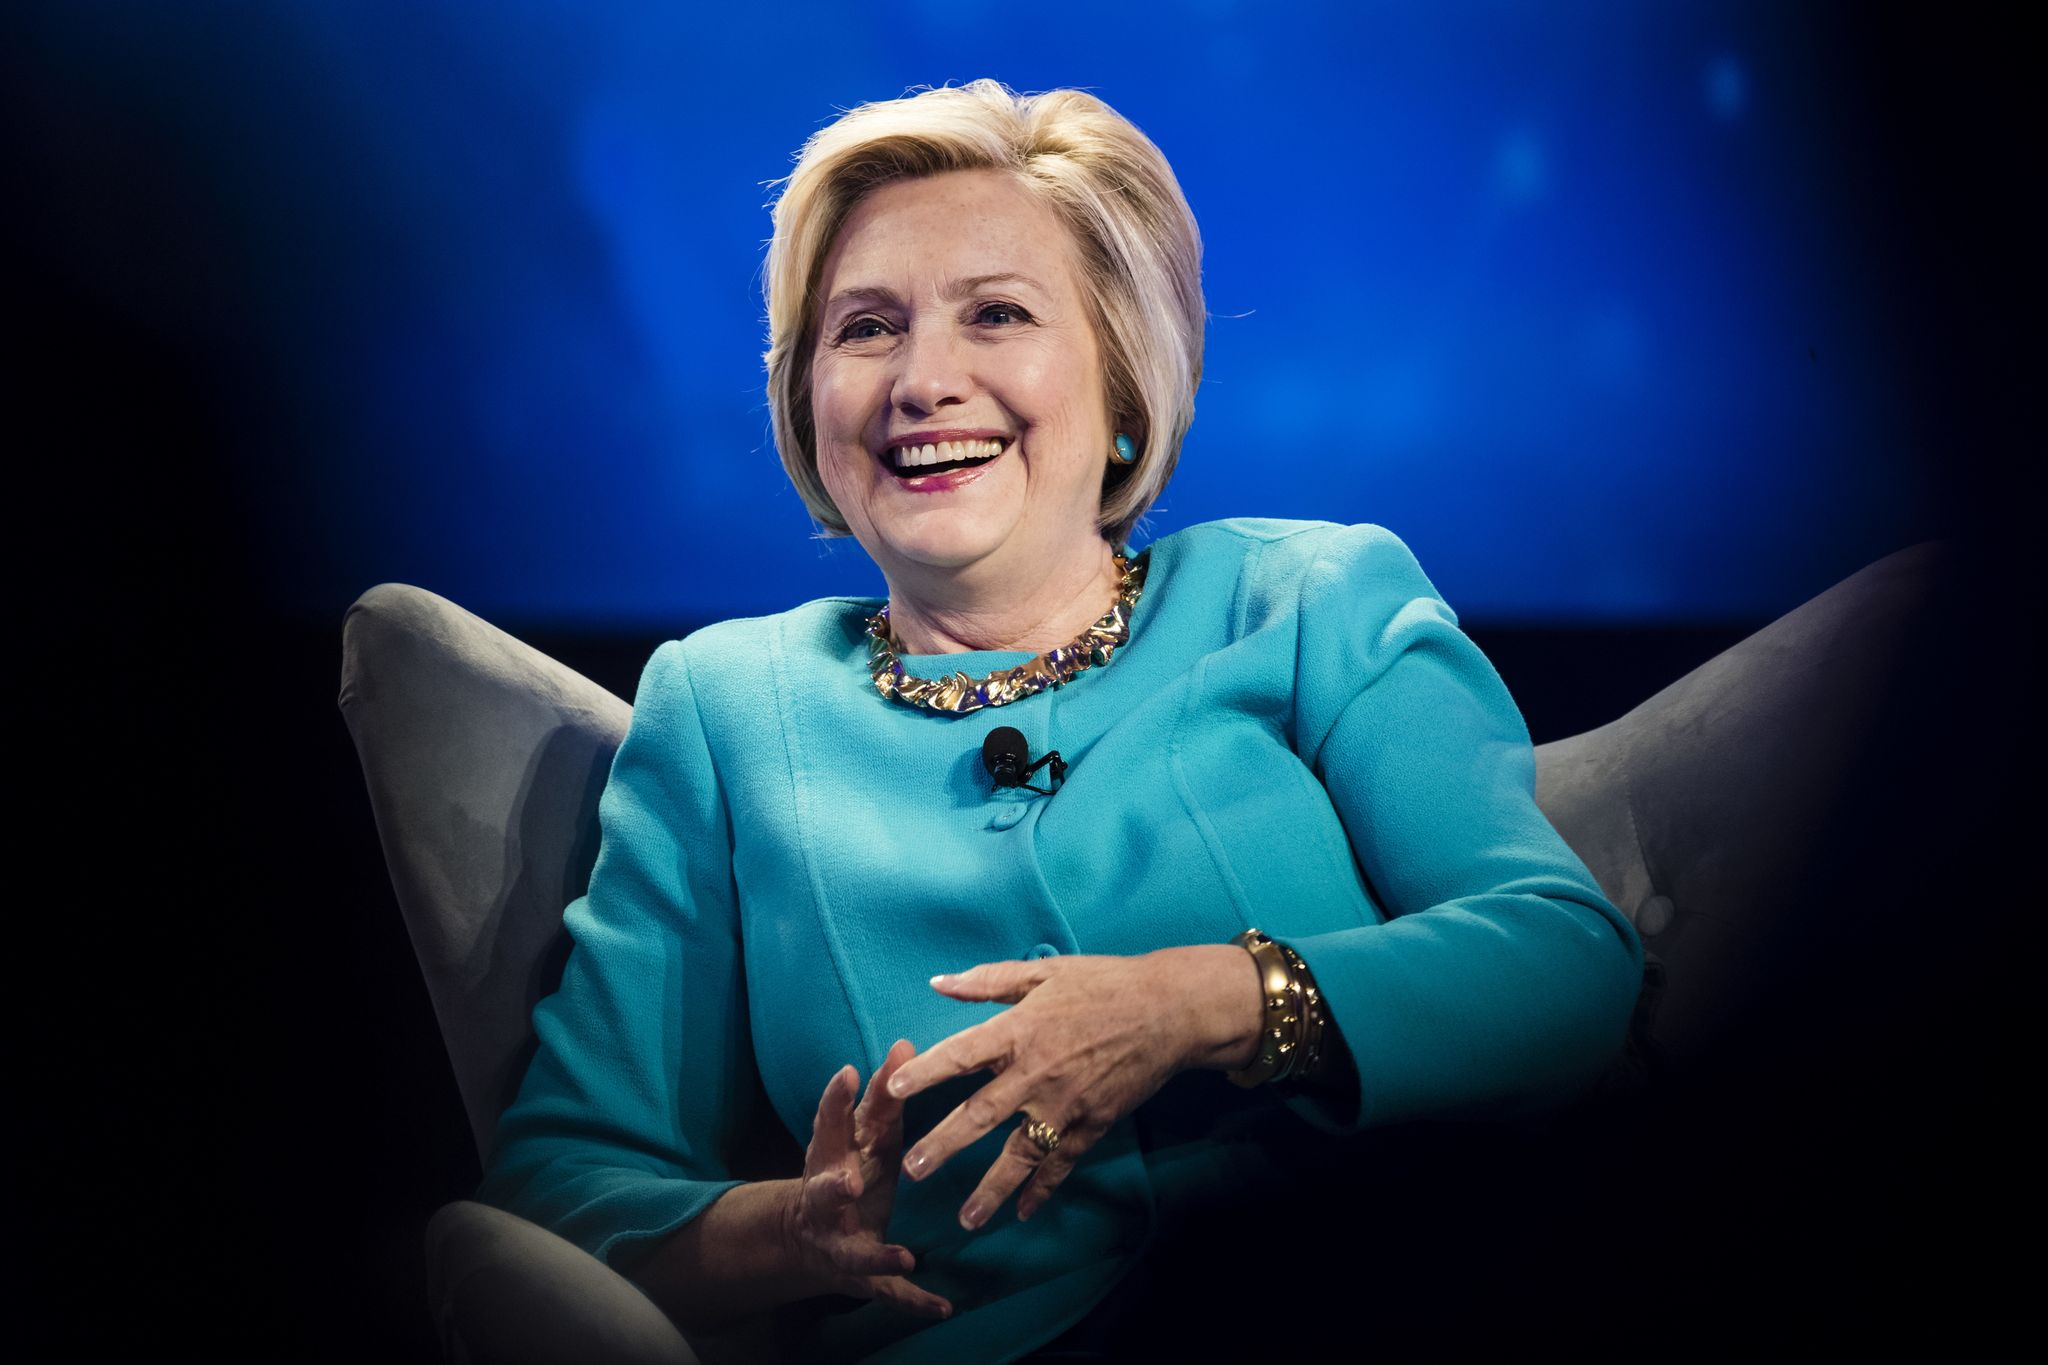 Hillary Clinton Democratic Party's face of 2018